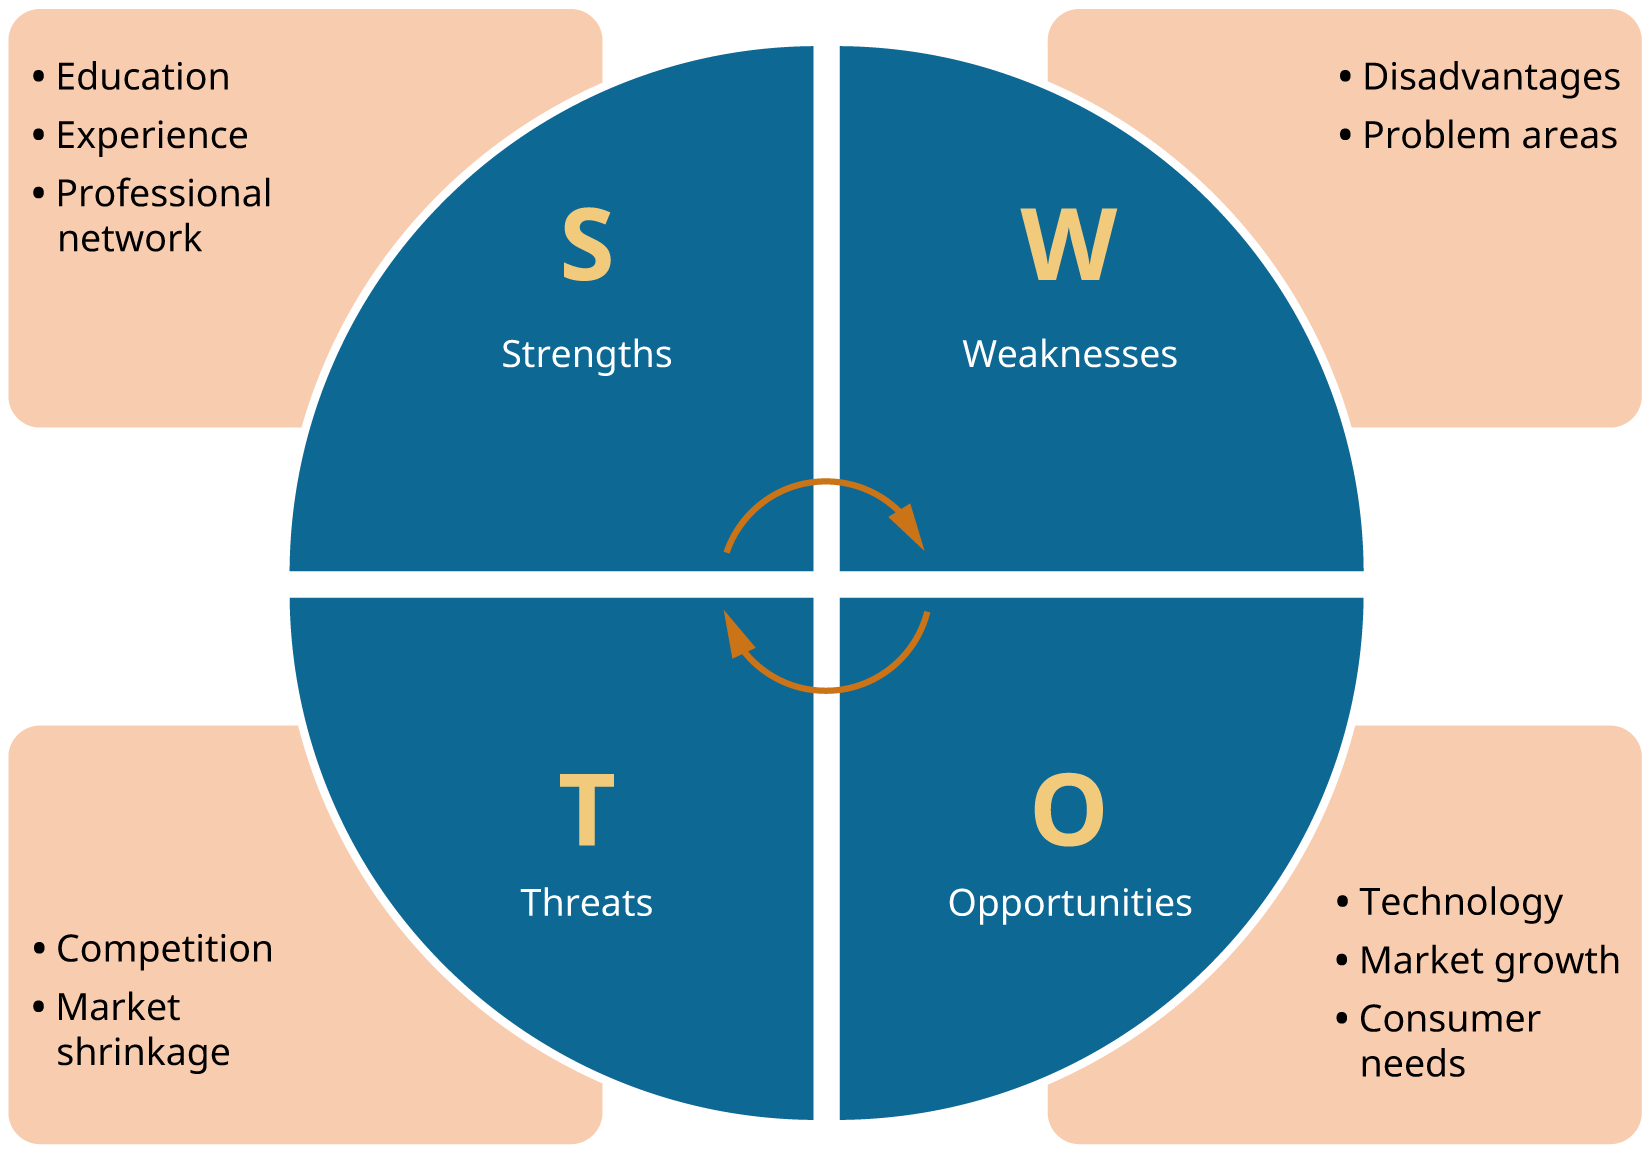 SWOT analysis involves Strengths (education, experience, and professional network), Weaknesses (disadvantages and problem areas), Opportunities (technology, market growth, and consumer needs), and Threats (competition and market shrinkage).